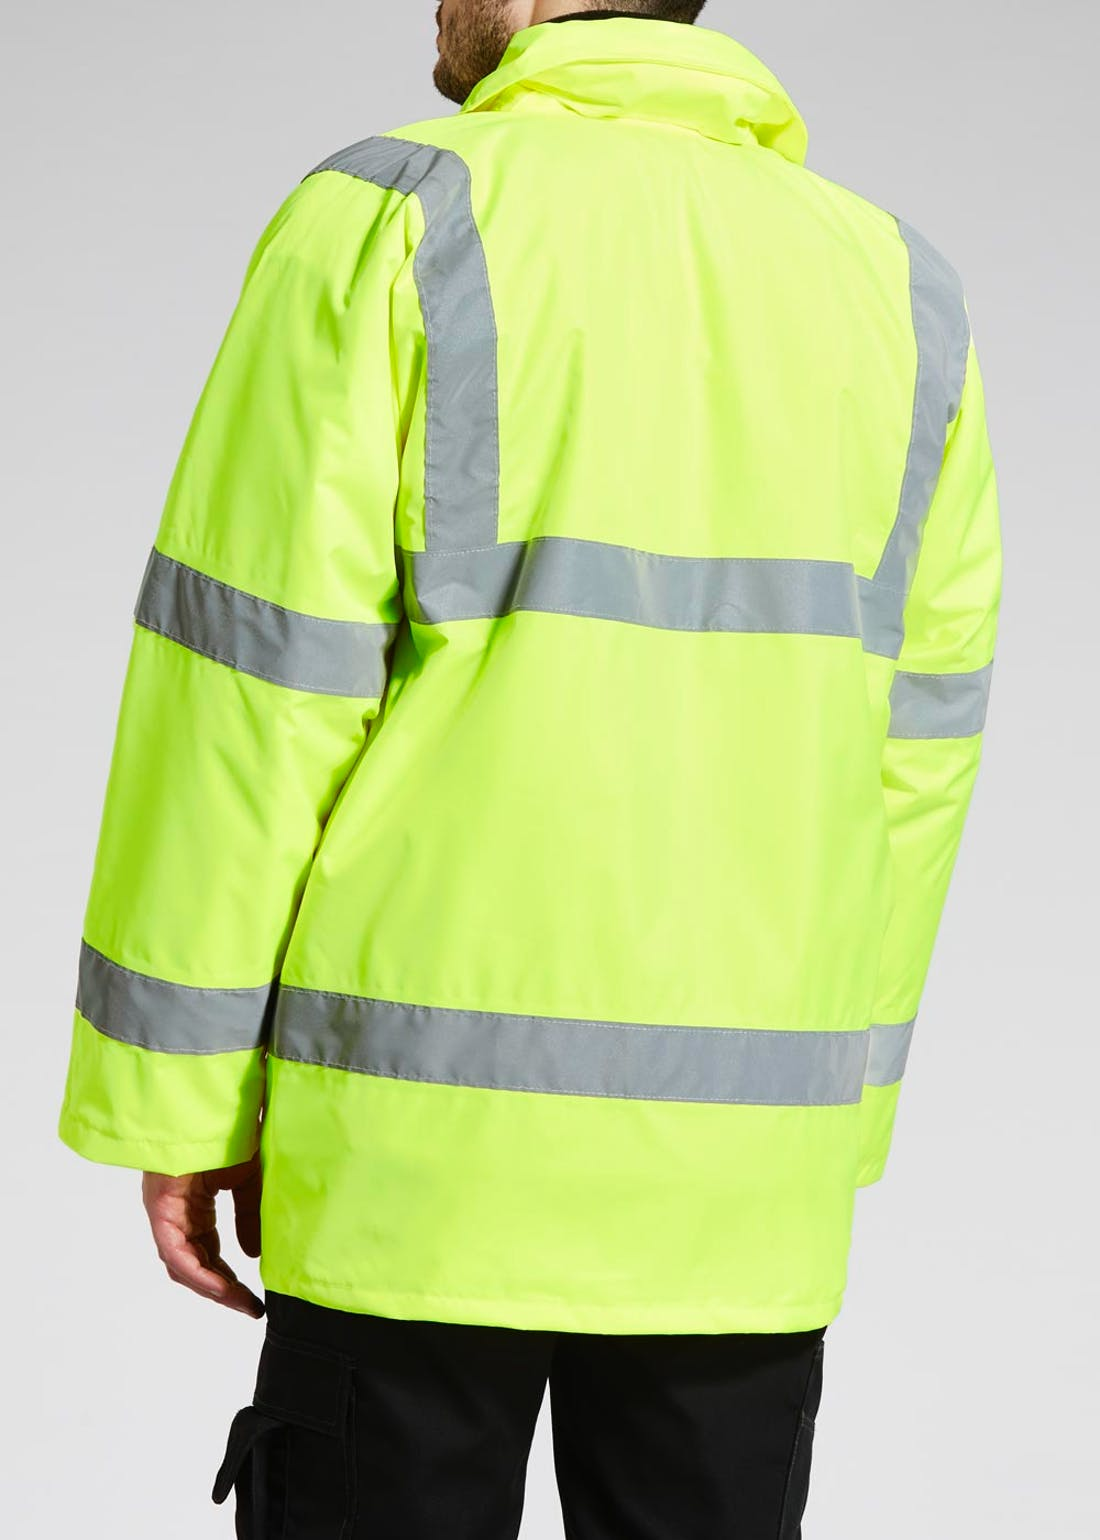 Yellow Hi-Vis Jacket